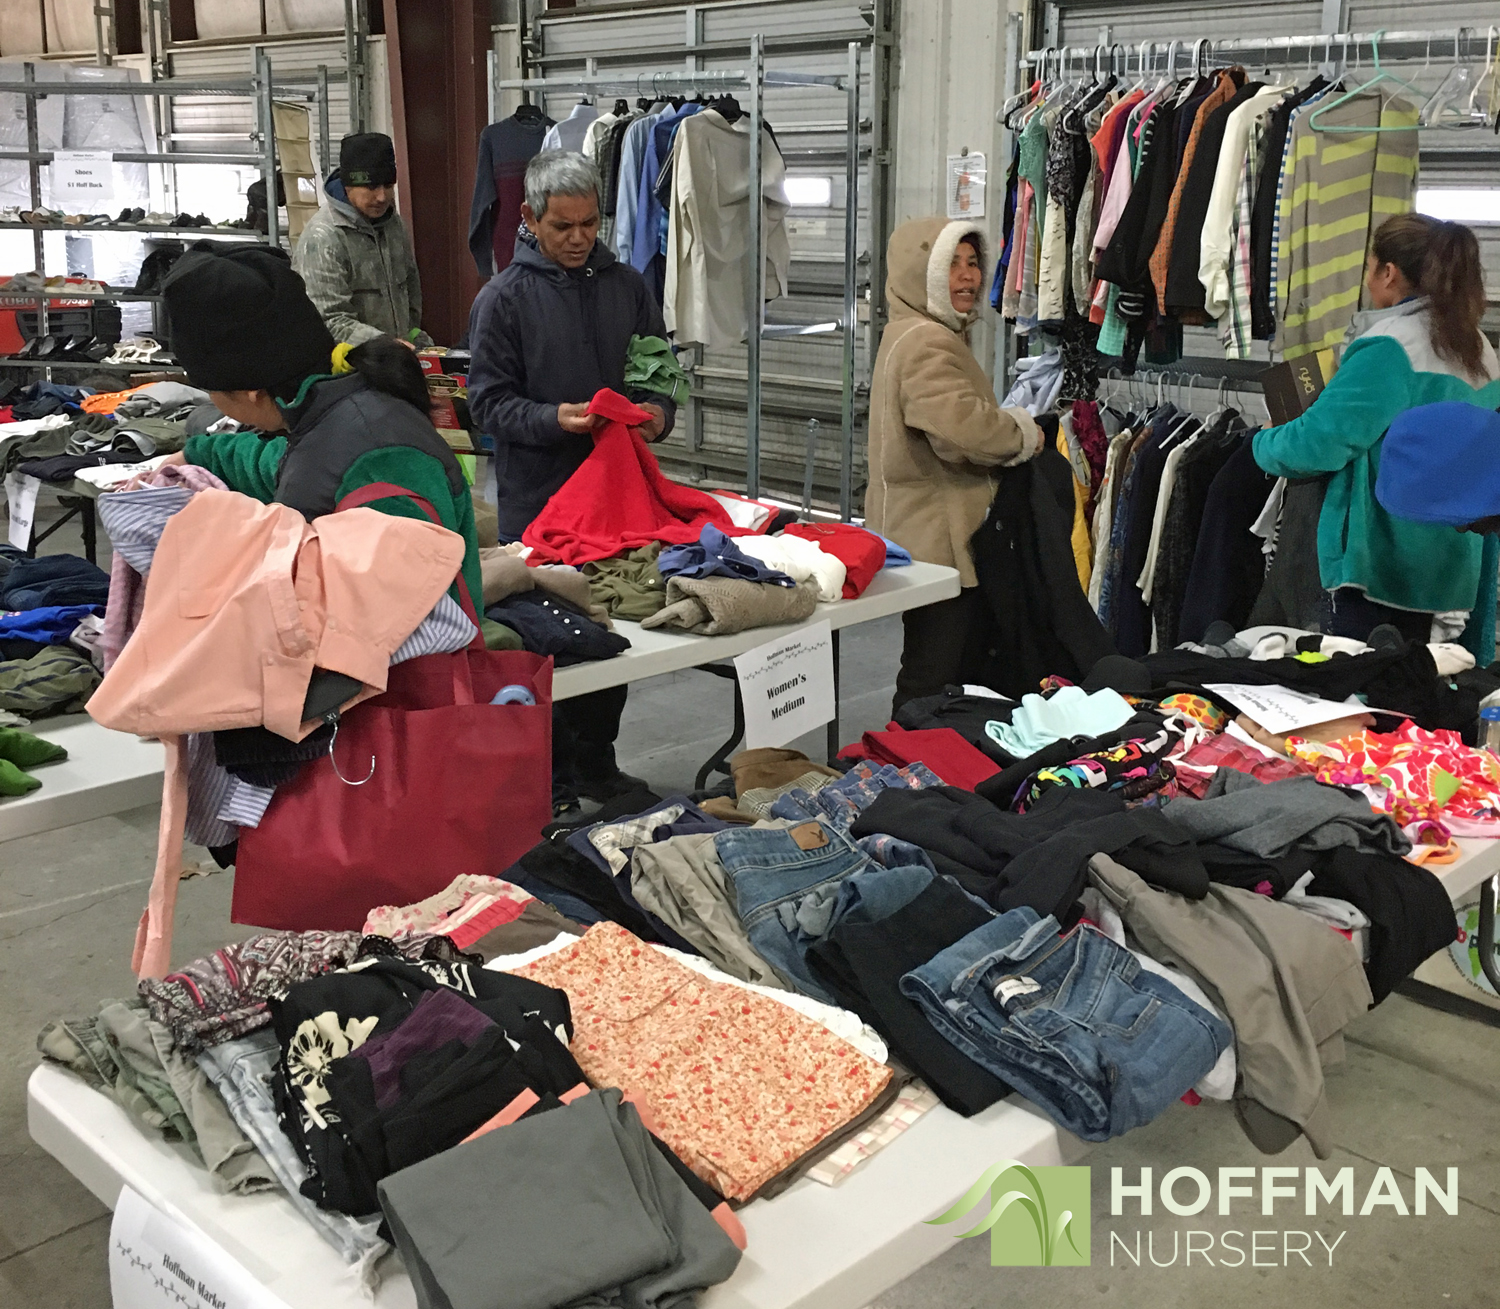 Tables and racks of clothing beckoned Hoffman Nursery shoppers.